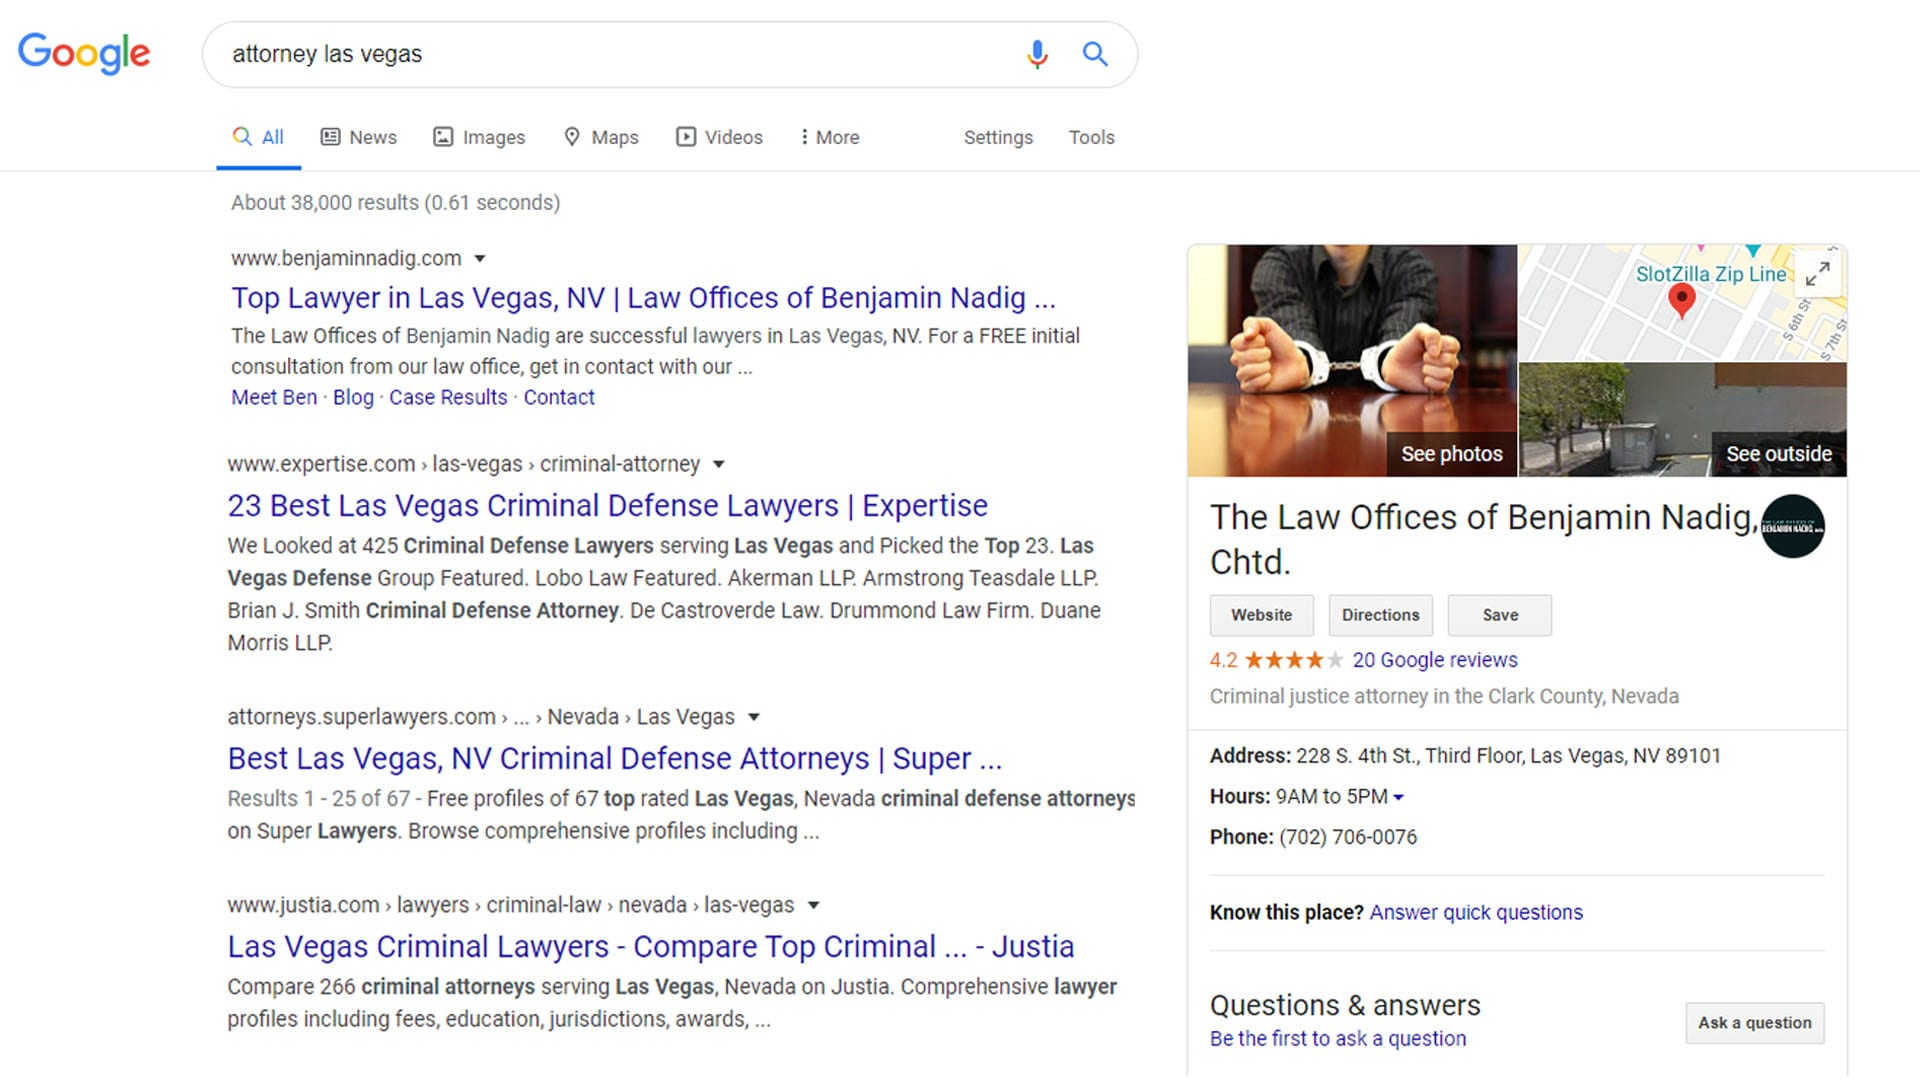 local seo listing for attorney